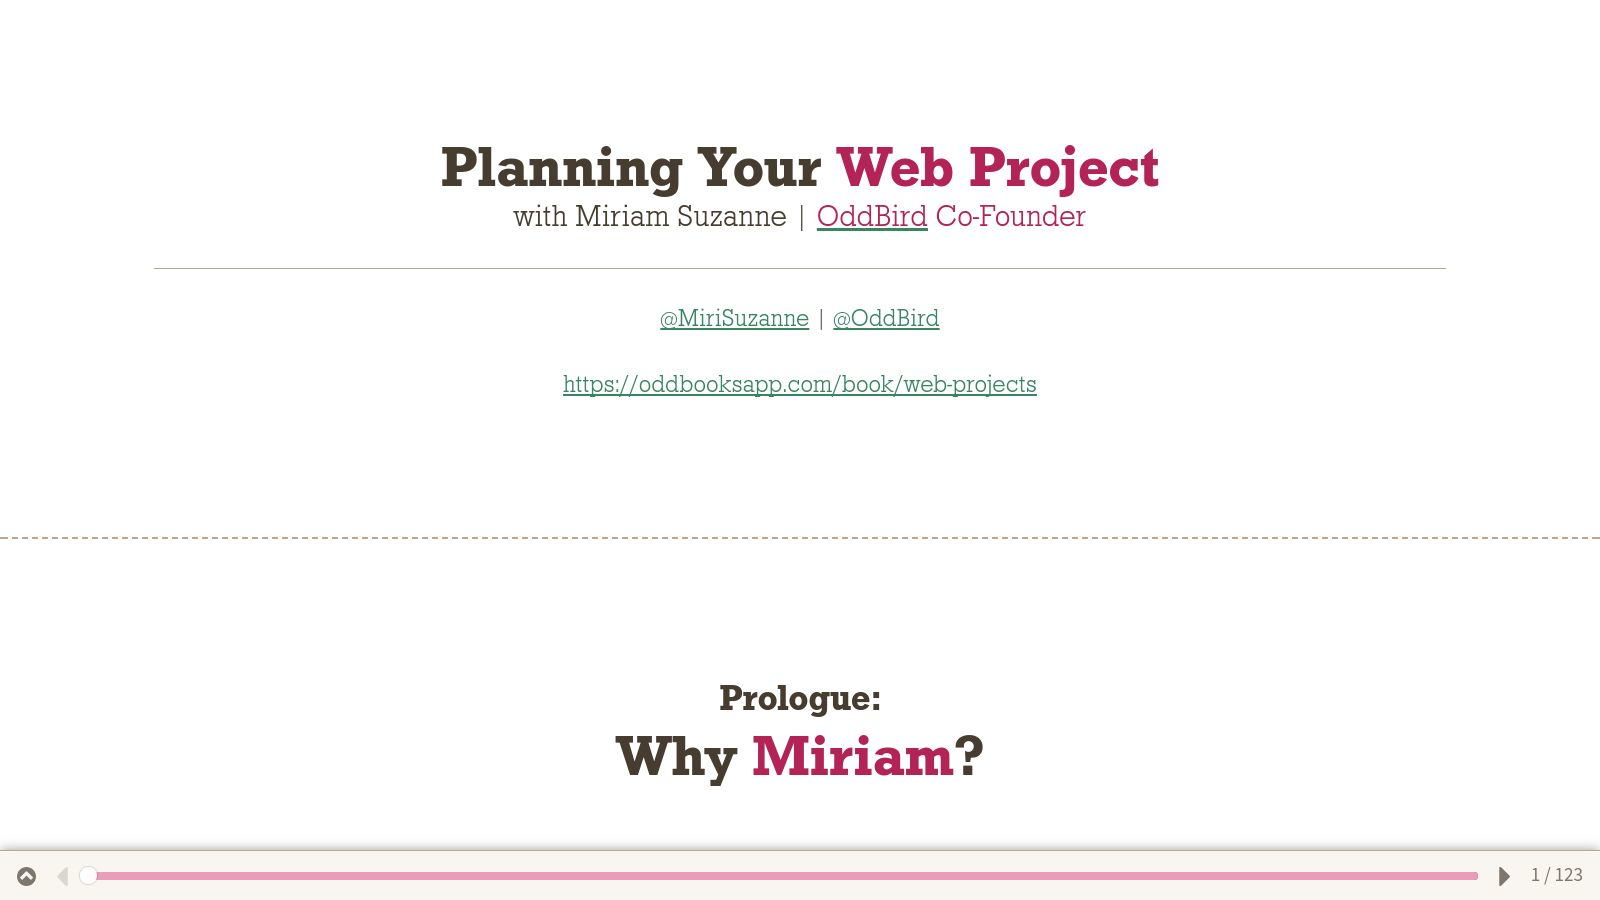 Planning Your Web Project